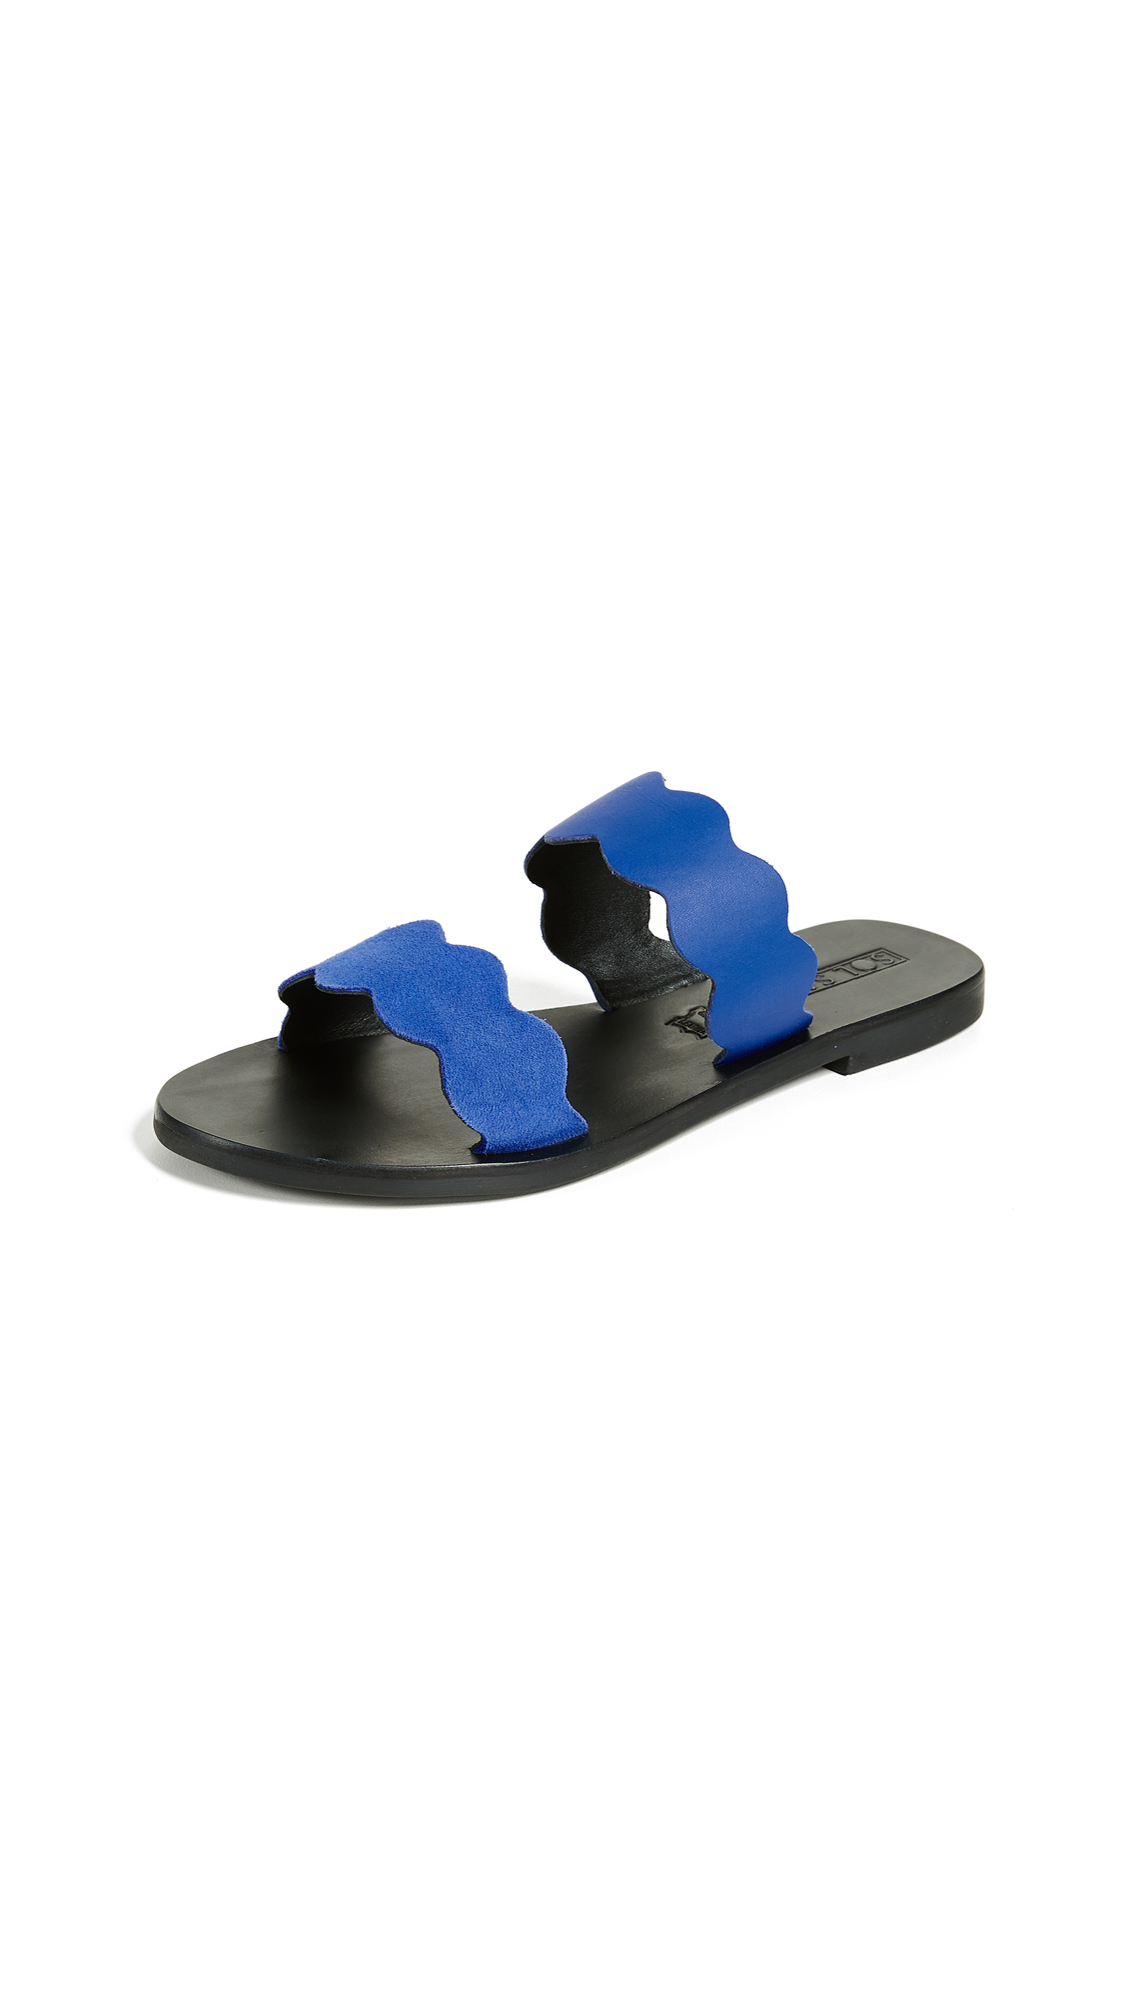 Sol Sana Wave Slide Sandals - Cobalt